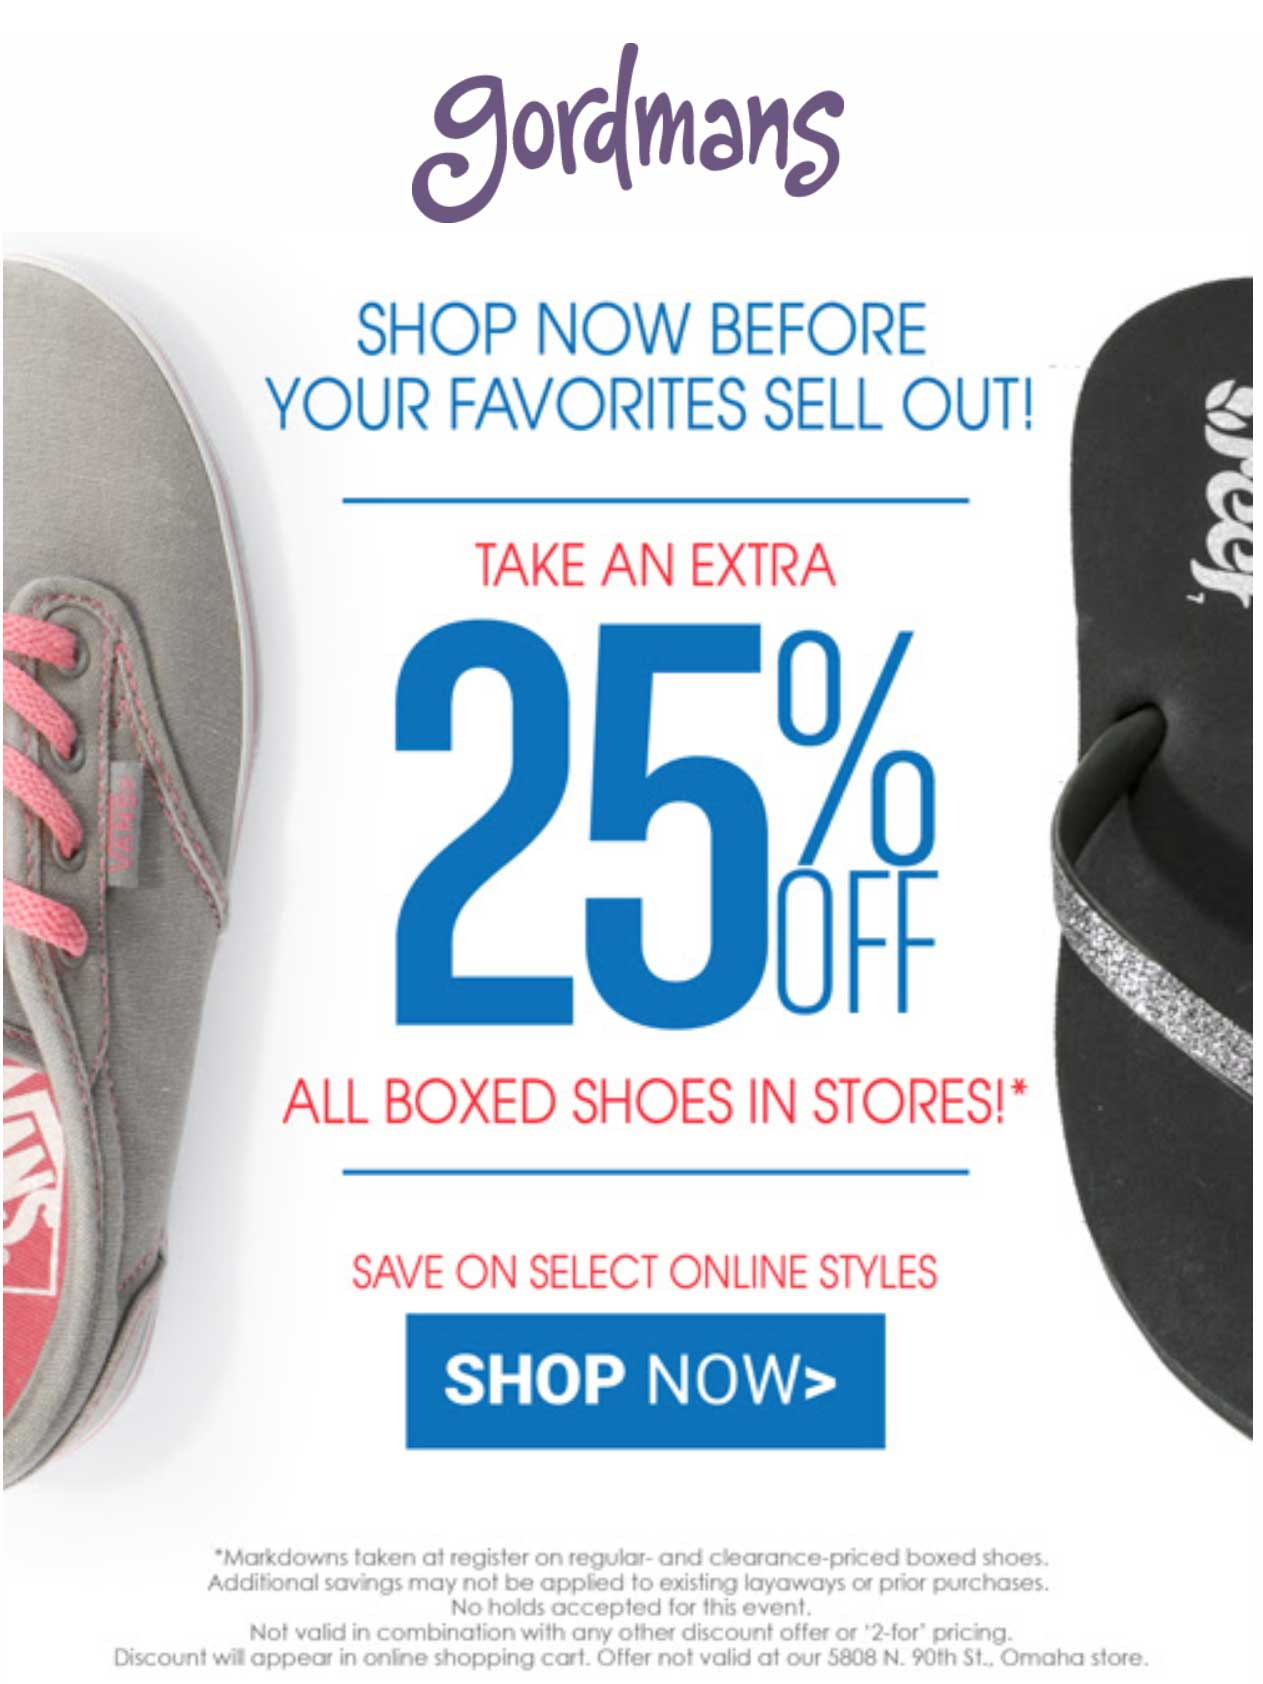 Gordmans.com Promo Coupon Extra 25% off all shoes at Gordmans